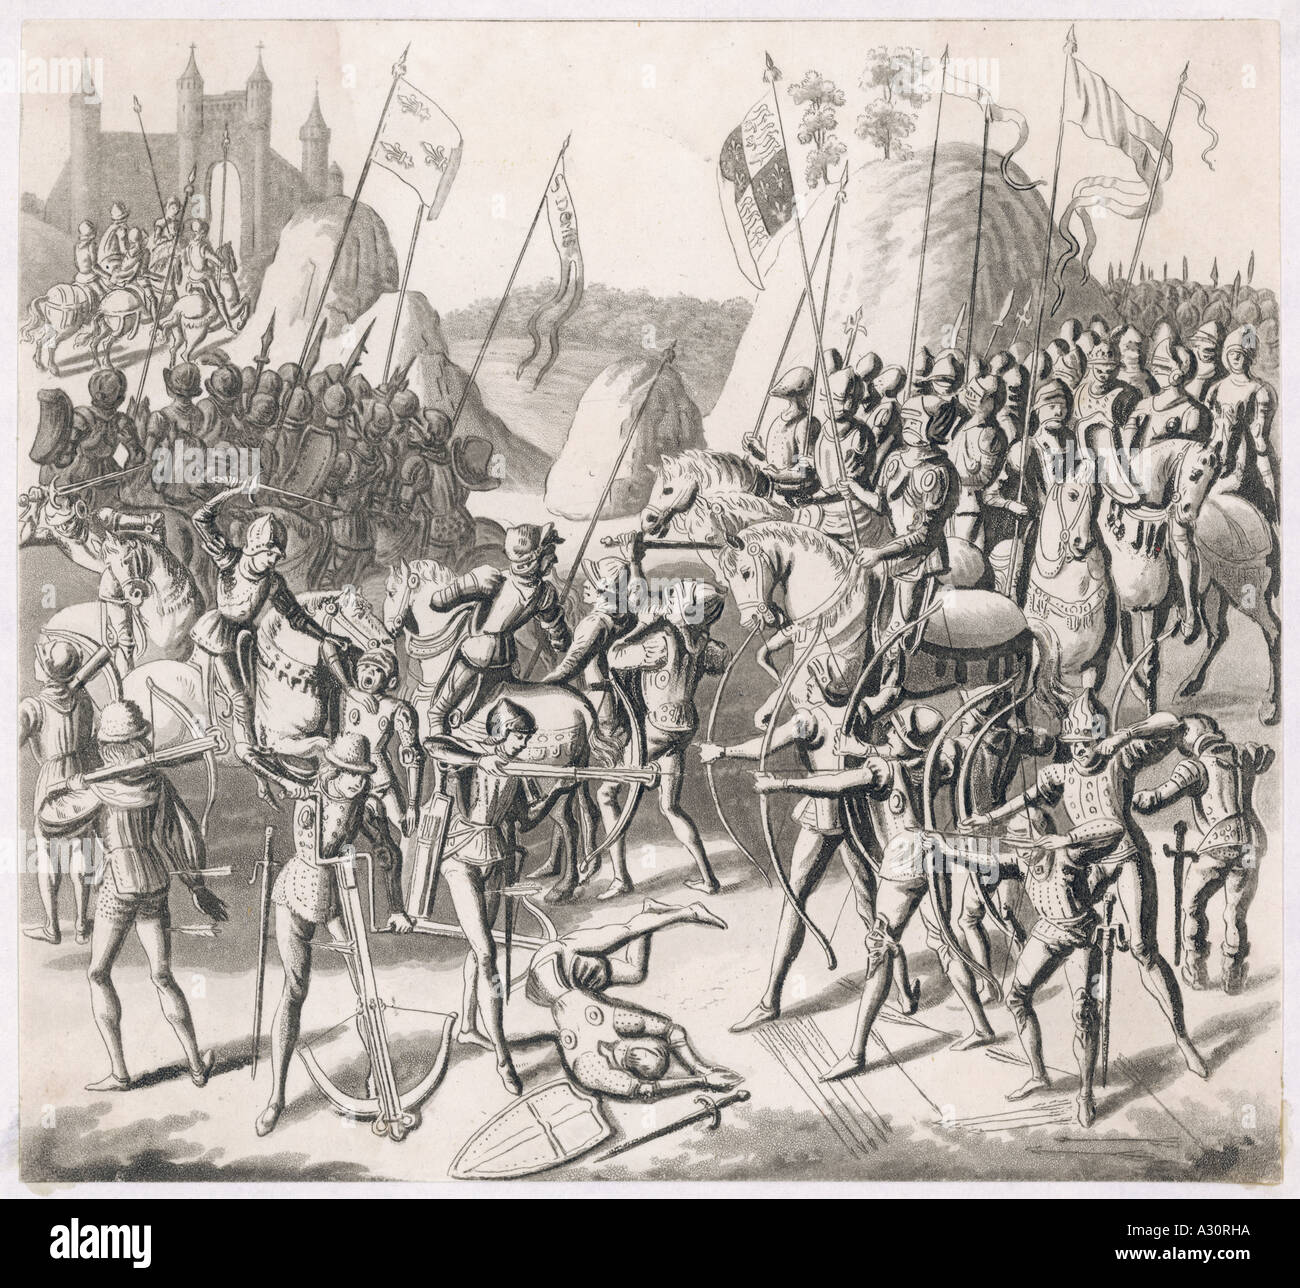 Battle Of Crecy 1346 - Stock Image